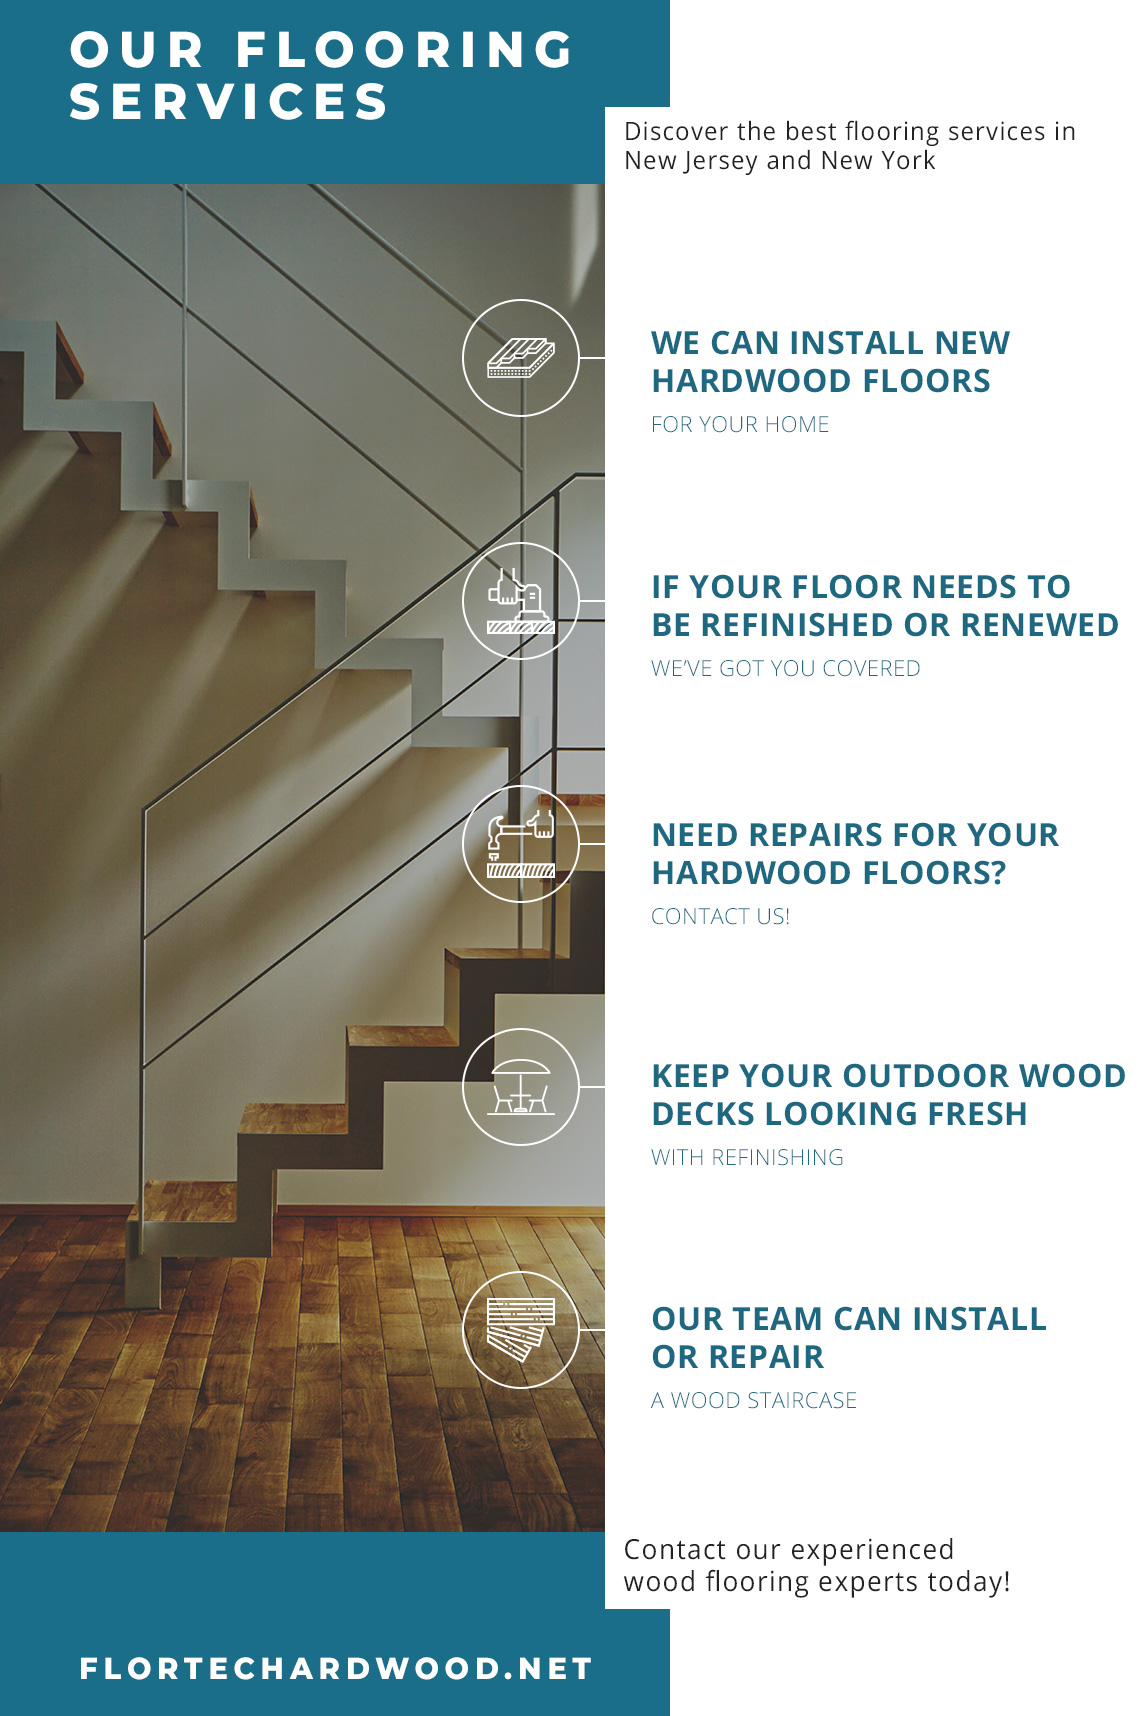 Our Flooring Services infographic